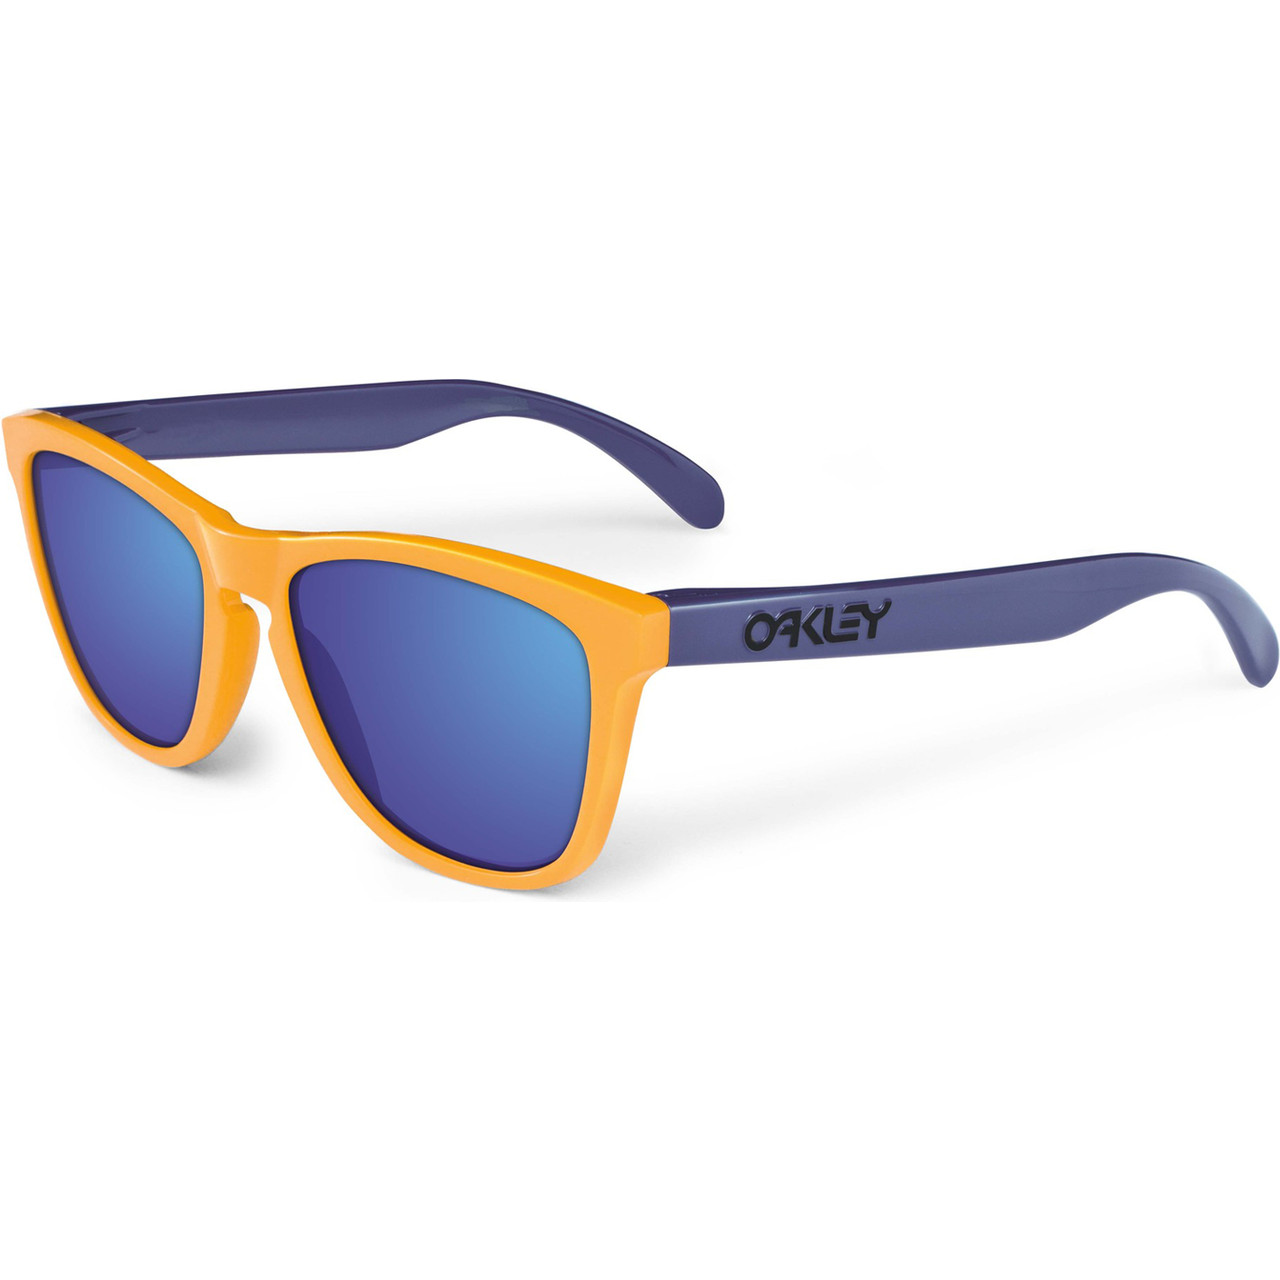 Okulary Oakley  <br/><small>Aquatique Frogskins Drop 362 </small>  24-362